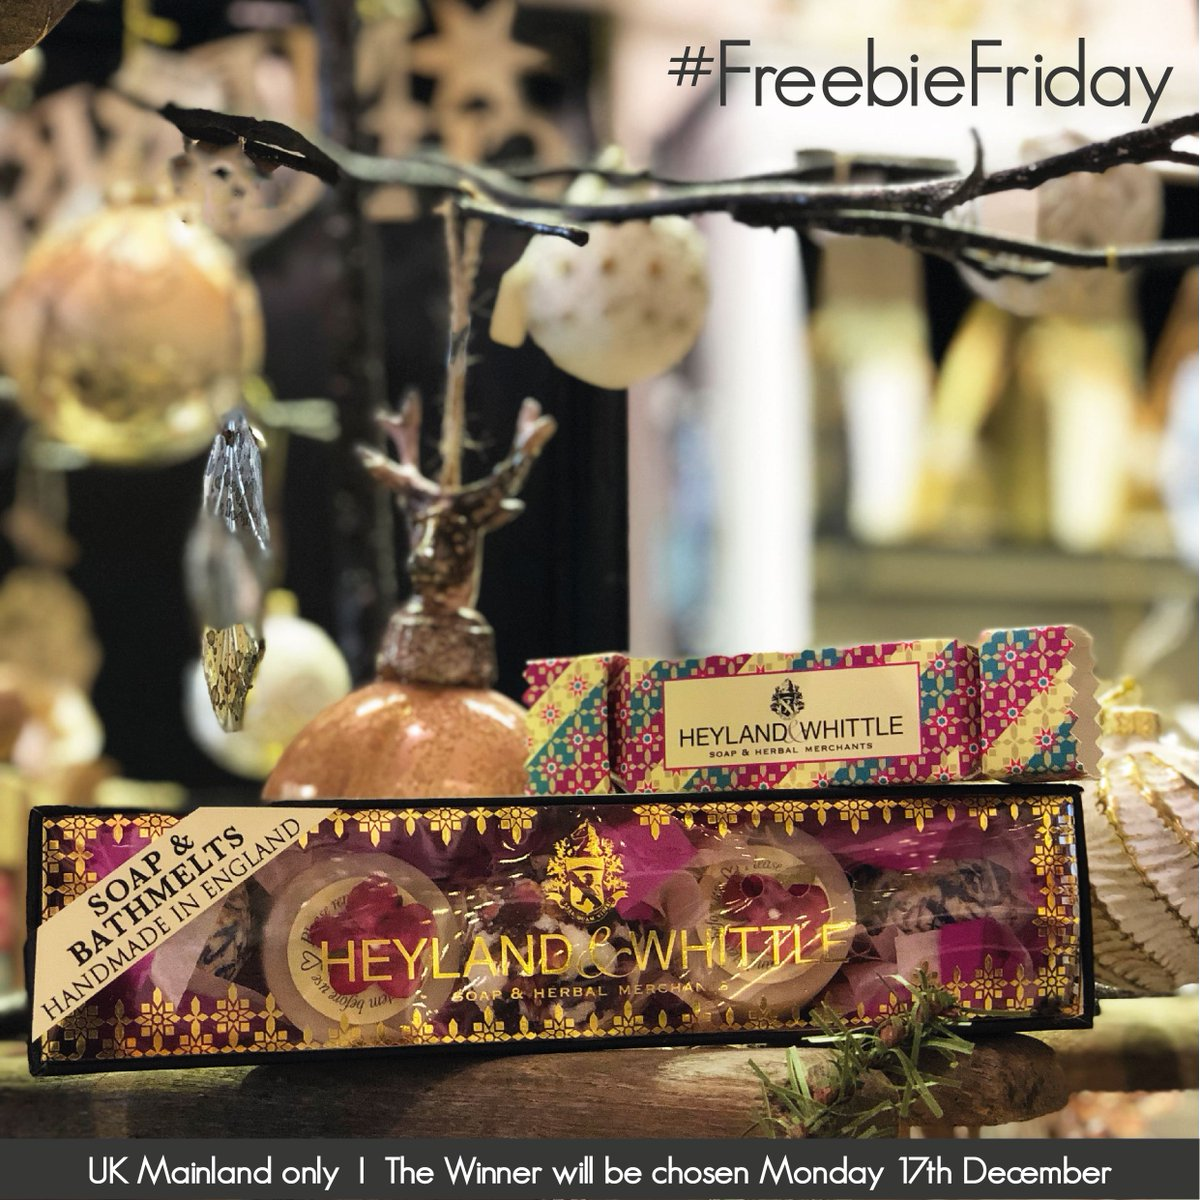 It's #FreebieFriday time! One lucky pair will each take home a Soap &amp; Bathmelts Gift Box and a Christmas Cracker. To enter, like this post and tag a friend. Best of luck to all! #LikeToWin #Giveaway #HomeFragrance #TagAFriend #CompetitionTime #GiftIdeas #Win #ChristmasGifts<br>http://pic.twitter.com/q3Z3FfwZyz